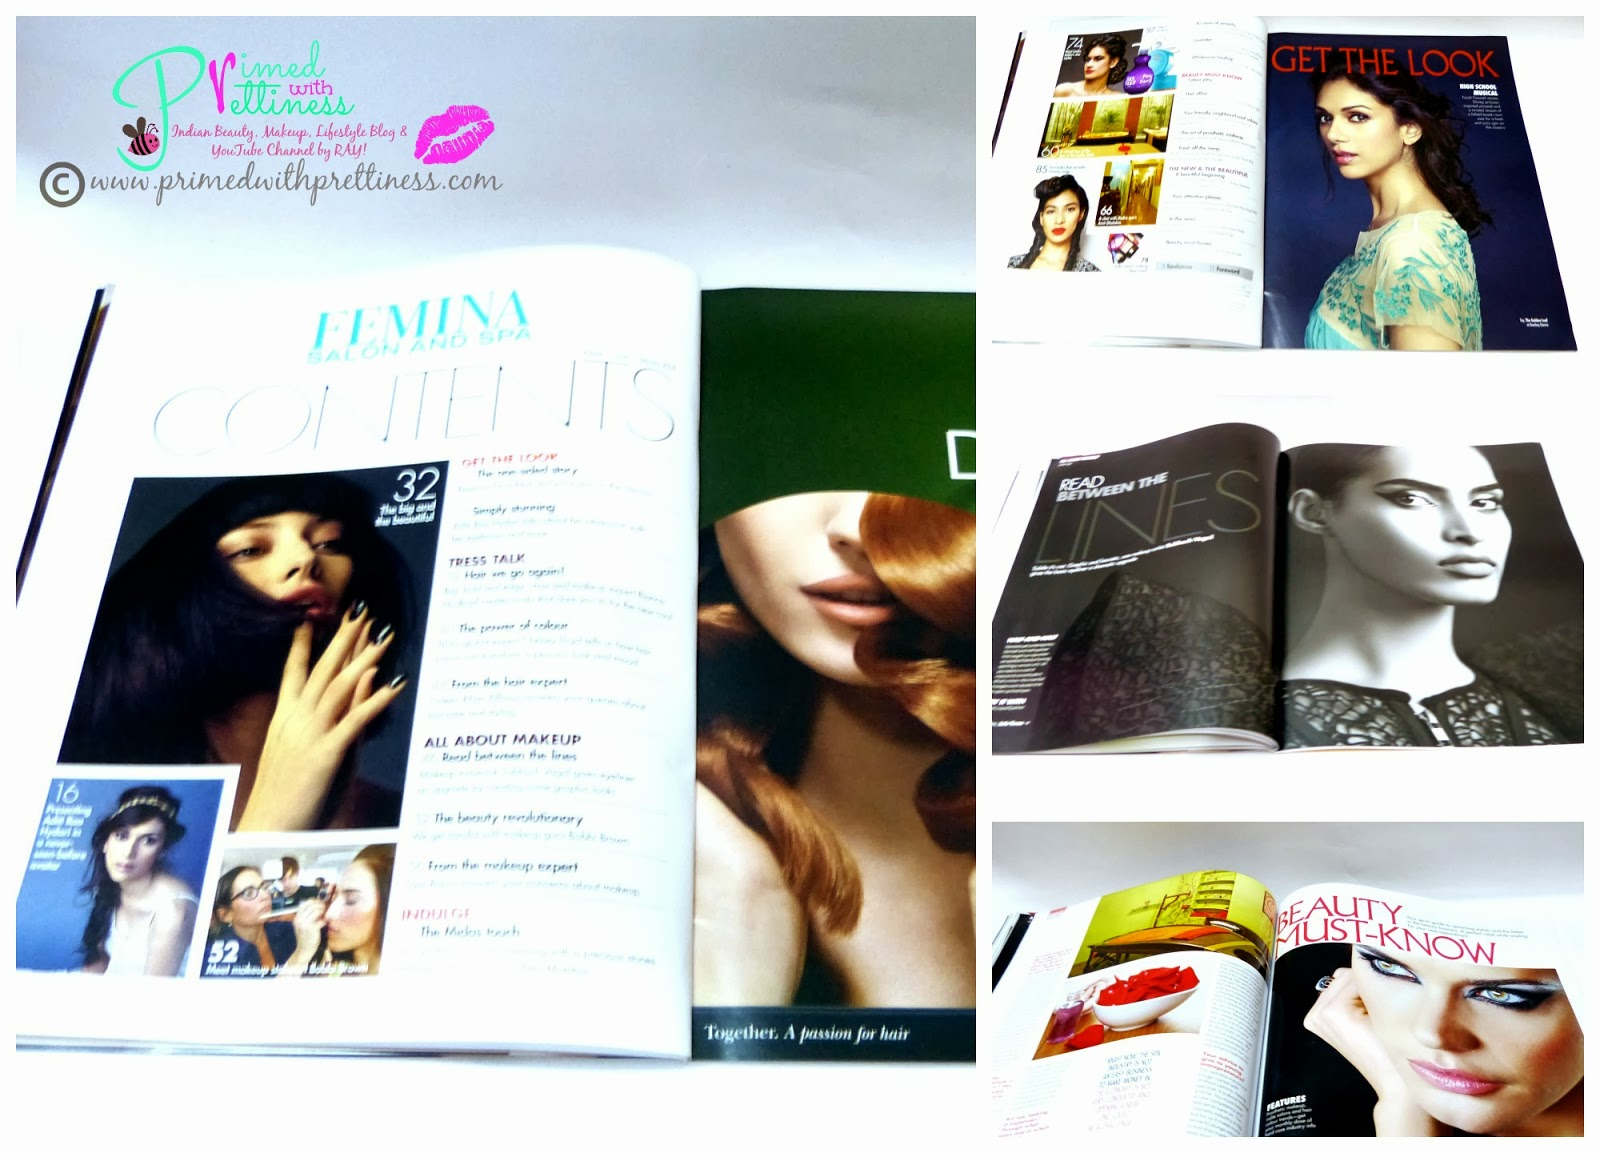 Femina Spa and Salon - January Issue